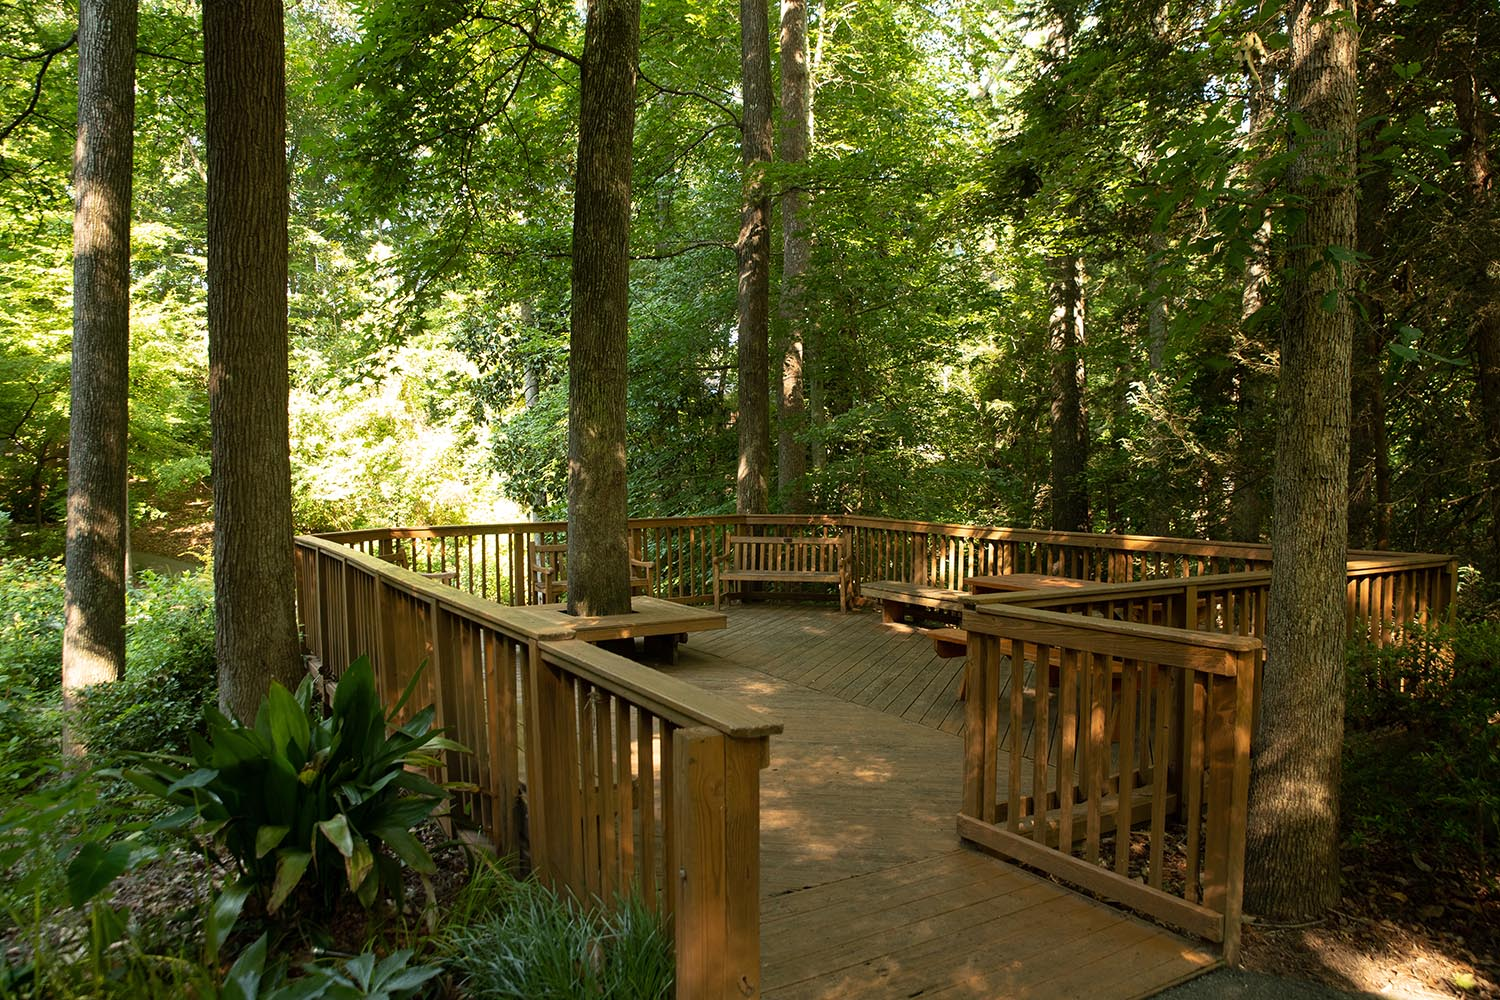 Observation Deck - Located deeper in the woodland and enclosed by trees that gently filter sunlight.